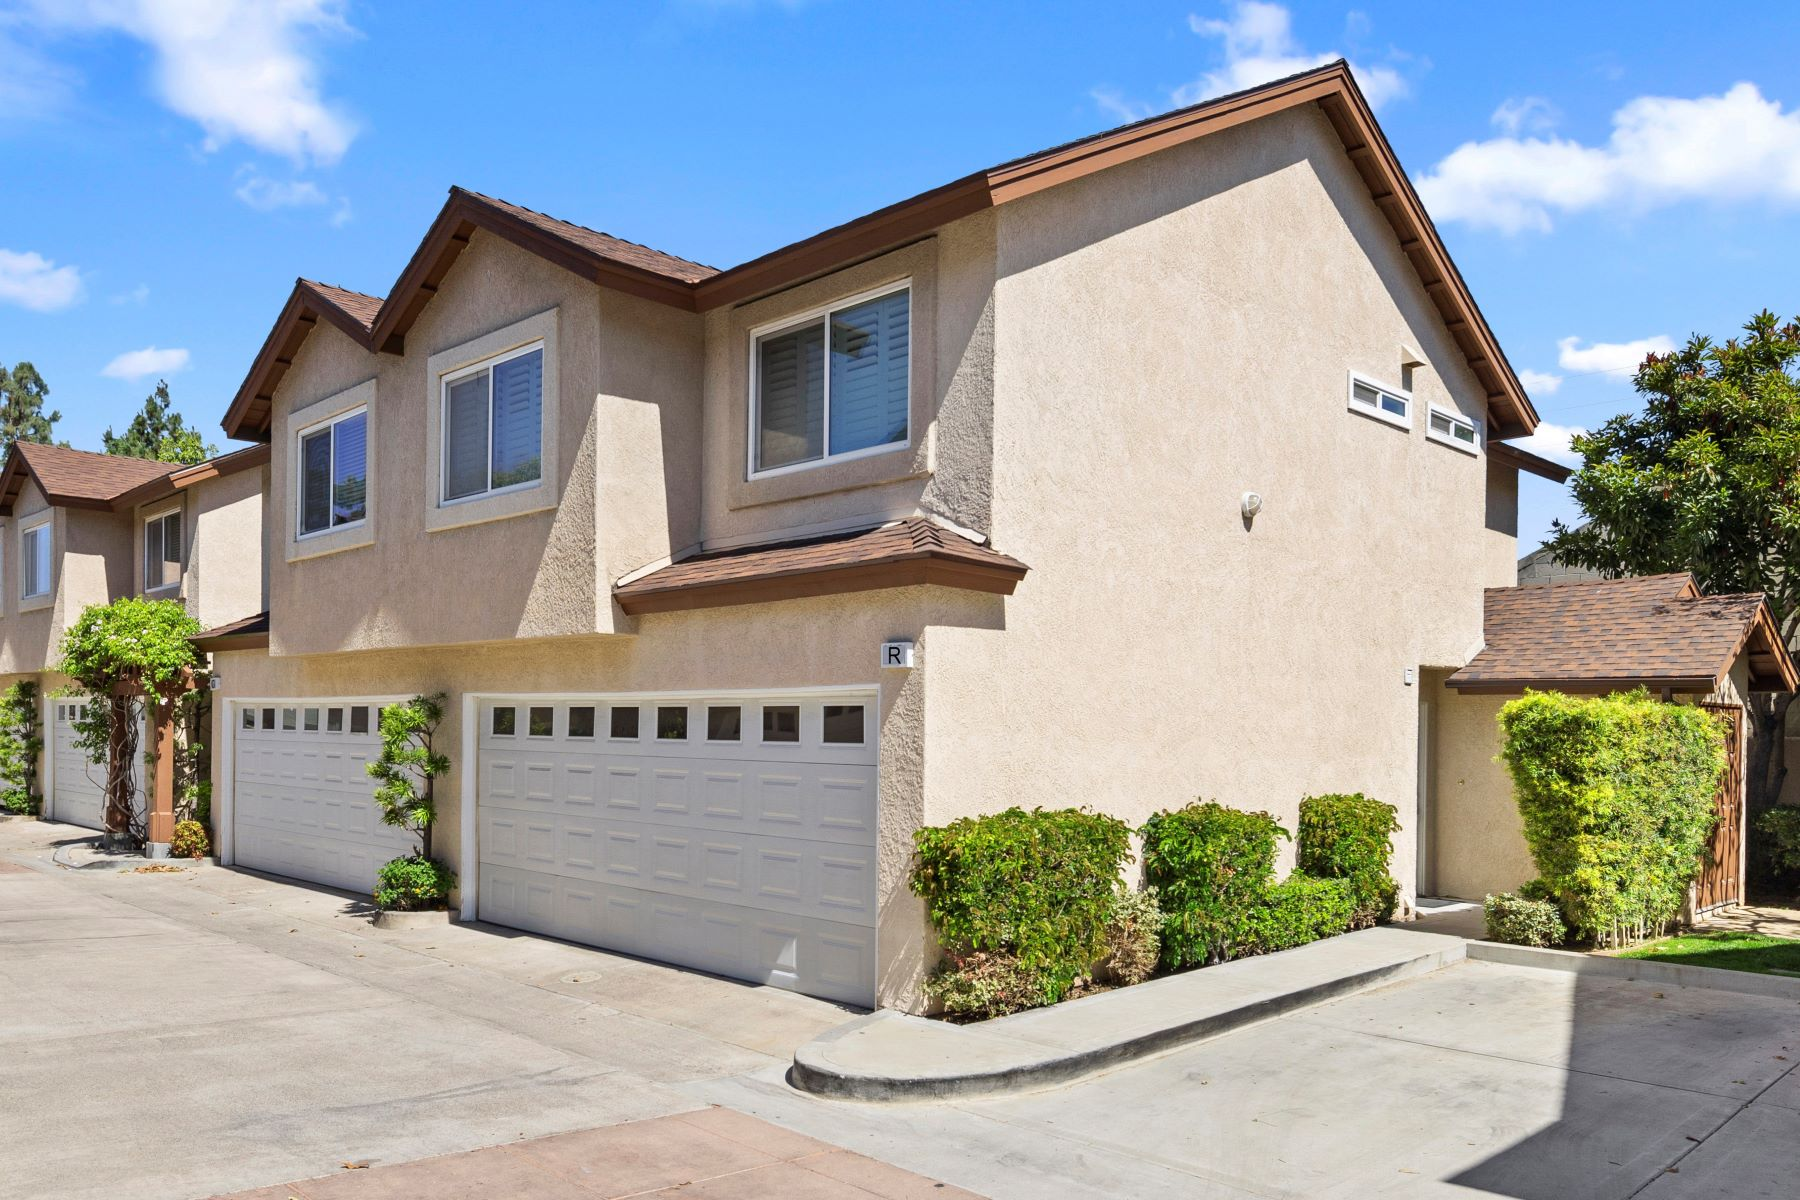 townhouses for Sale at 2233 Fairview Rd Unit R 2233 Fairview Rd, Unit R Costa Mesa, California 92627 United States